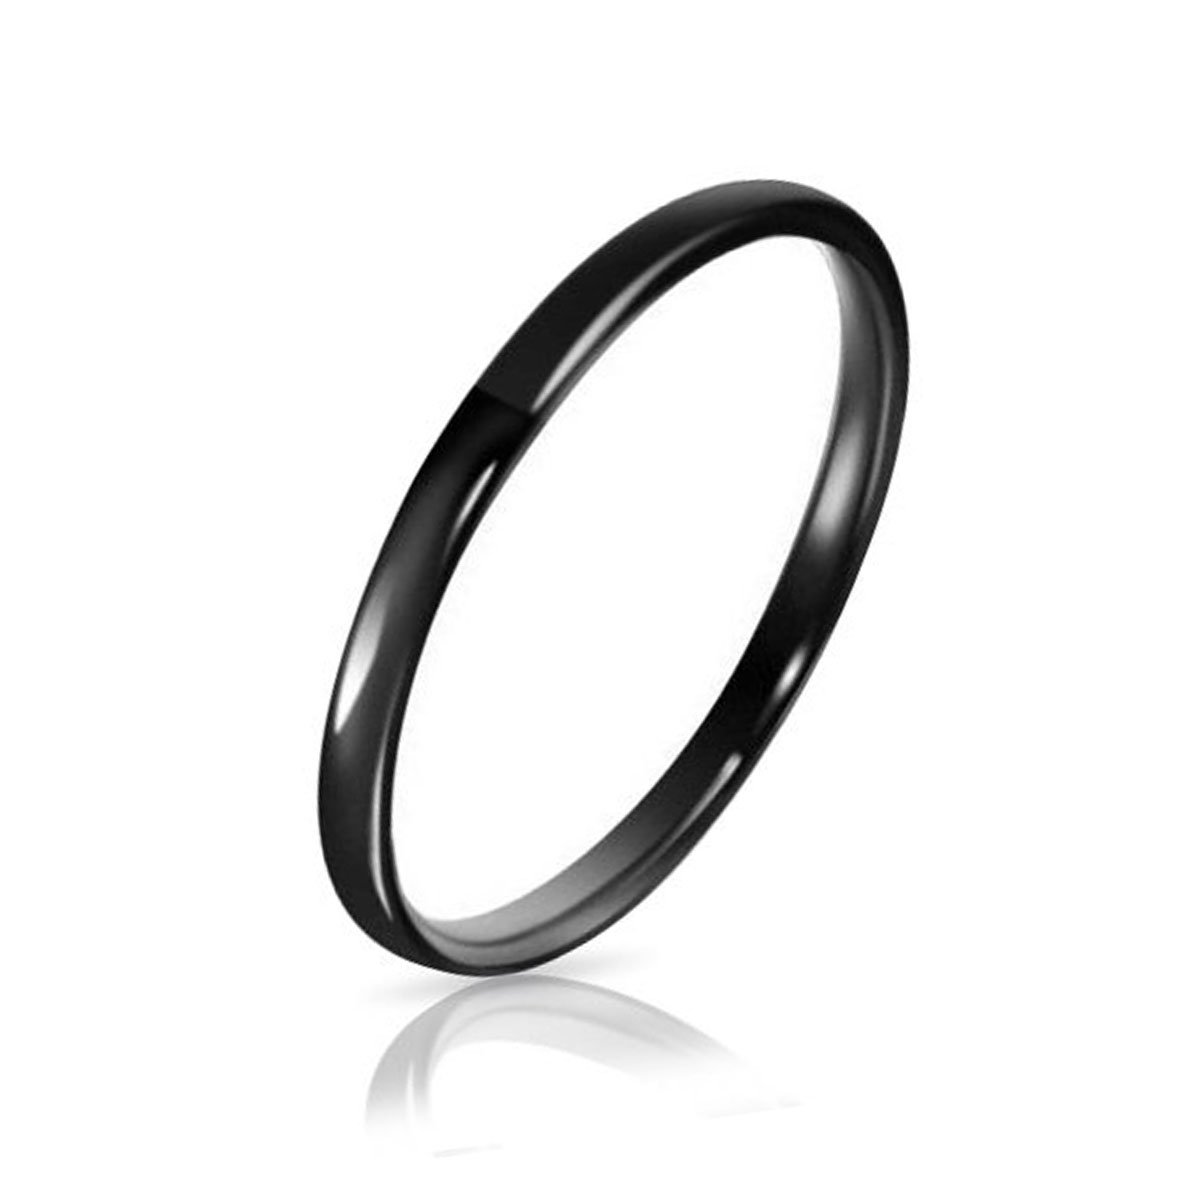 Three Keys Jewelry 2mm Tungsten Carbide Wedding Ring Black Women's Wedding Band Engagement Band Comfort Fit High Polished Classy Domed Size 9